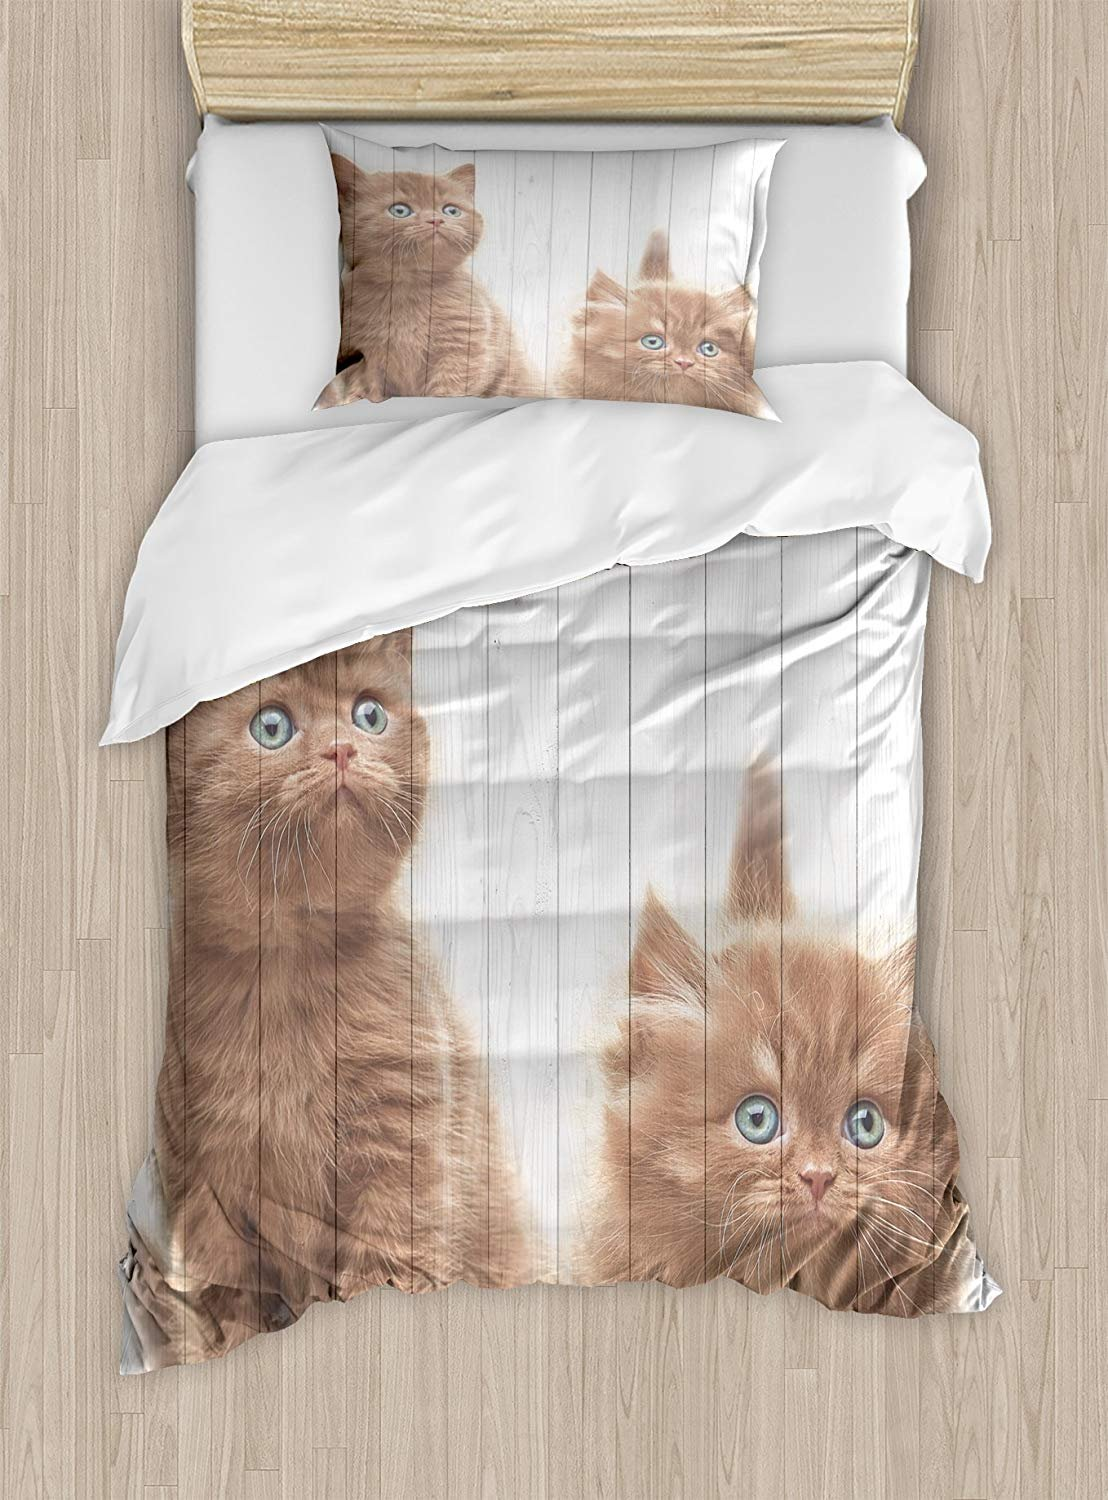 Twin XL Extra Long Bedding Set, Animal Duvet Cover Set, Cute Kittens Baby Cats Sweet Feline Kids Nursery Child Kitty Theme Artwork Print, Cosy House Collection 4 Piece Bedding Sets